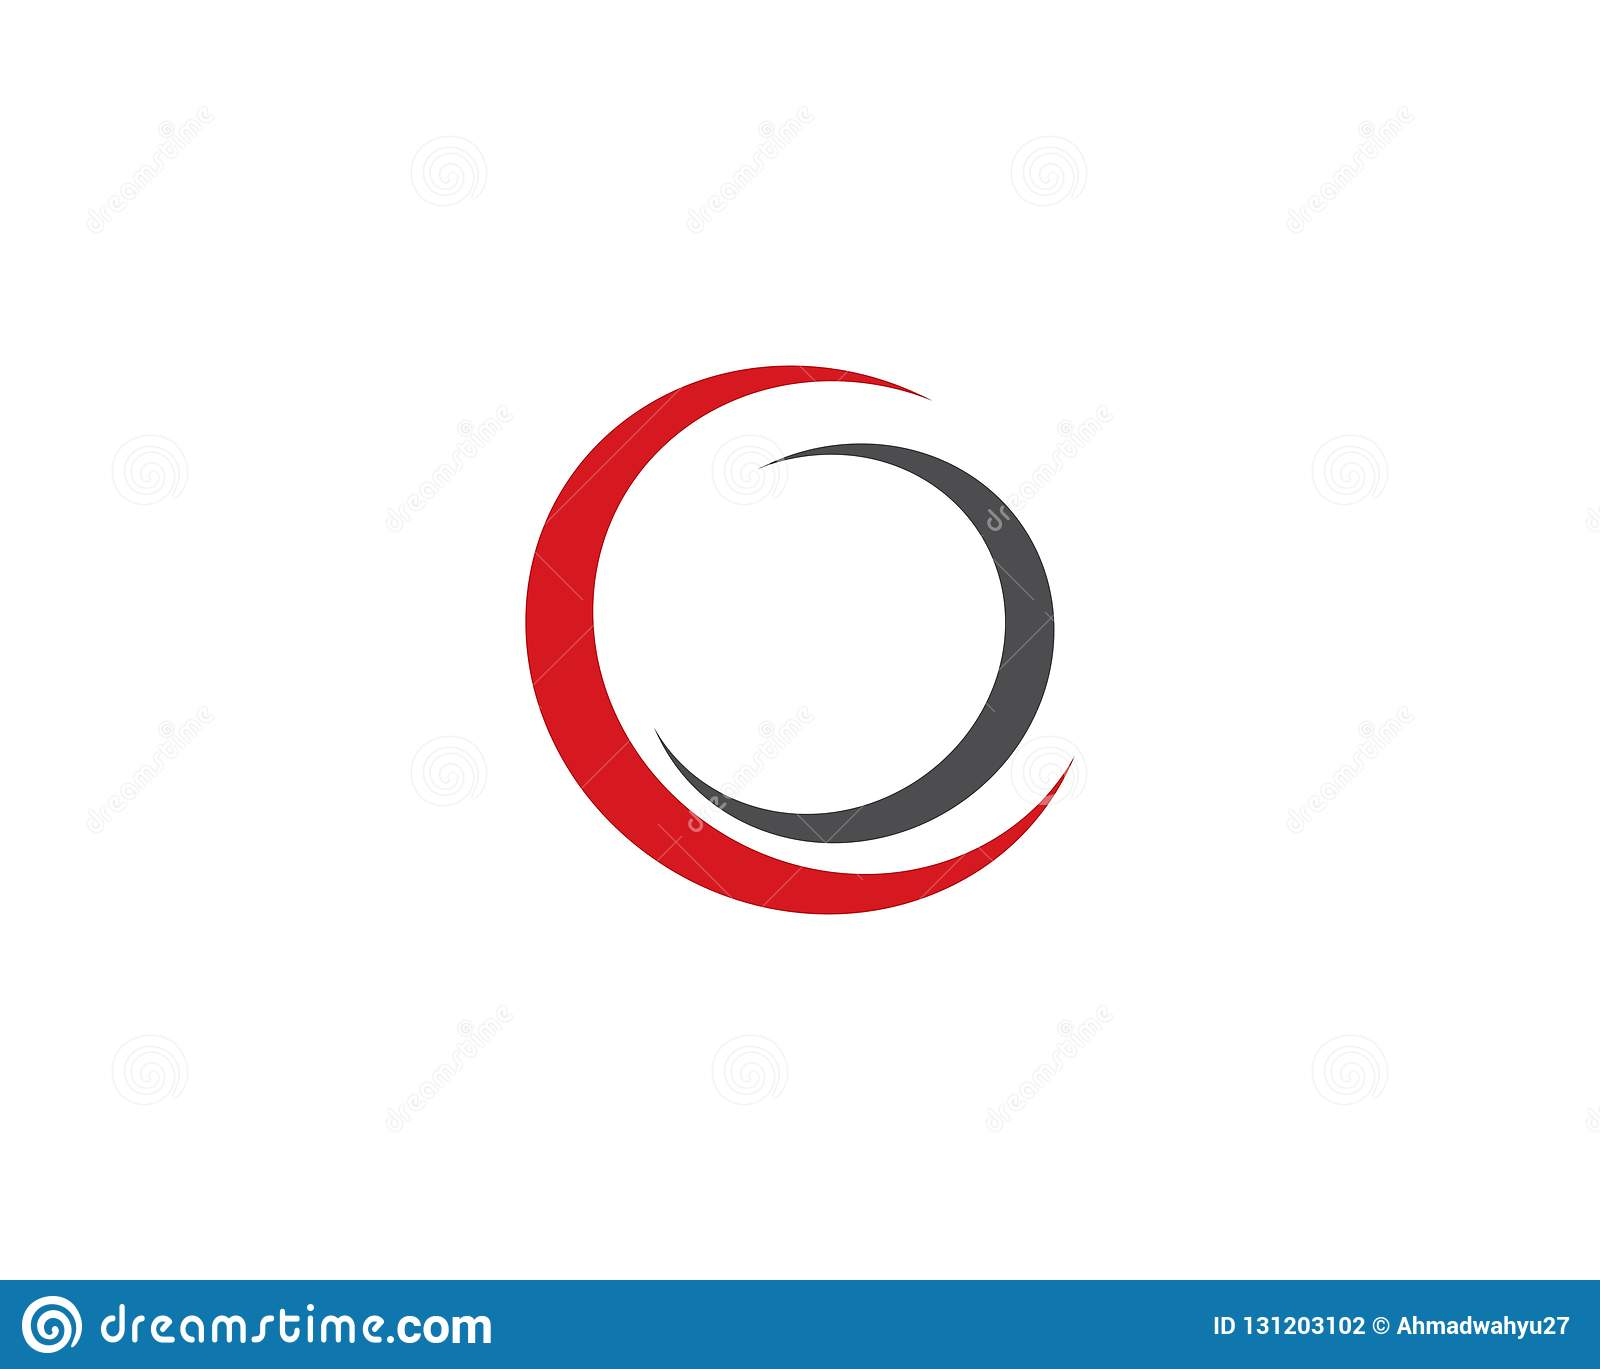 circle ring logo template stock vector illustration of abstract 131203102 https www dreamstime com circle ring logo template circle ring logo template vector design image131203102